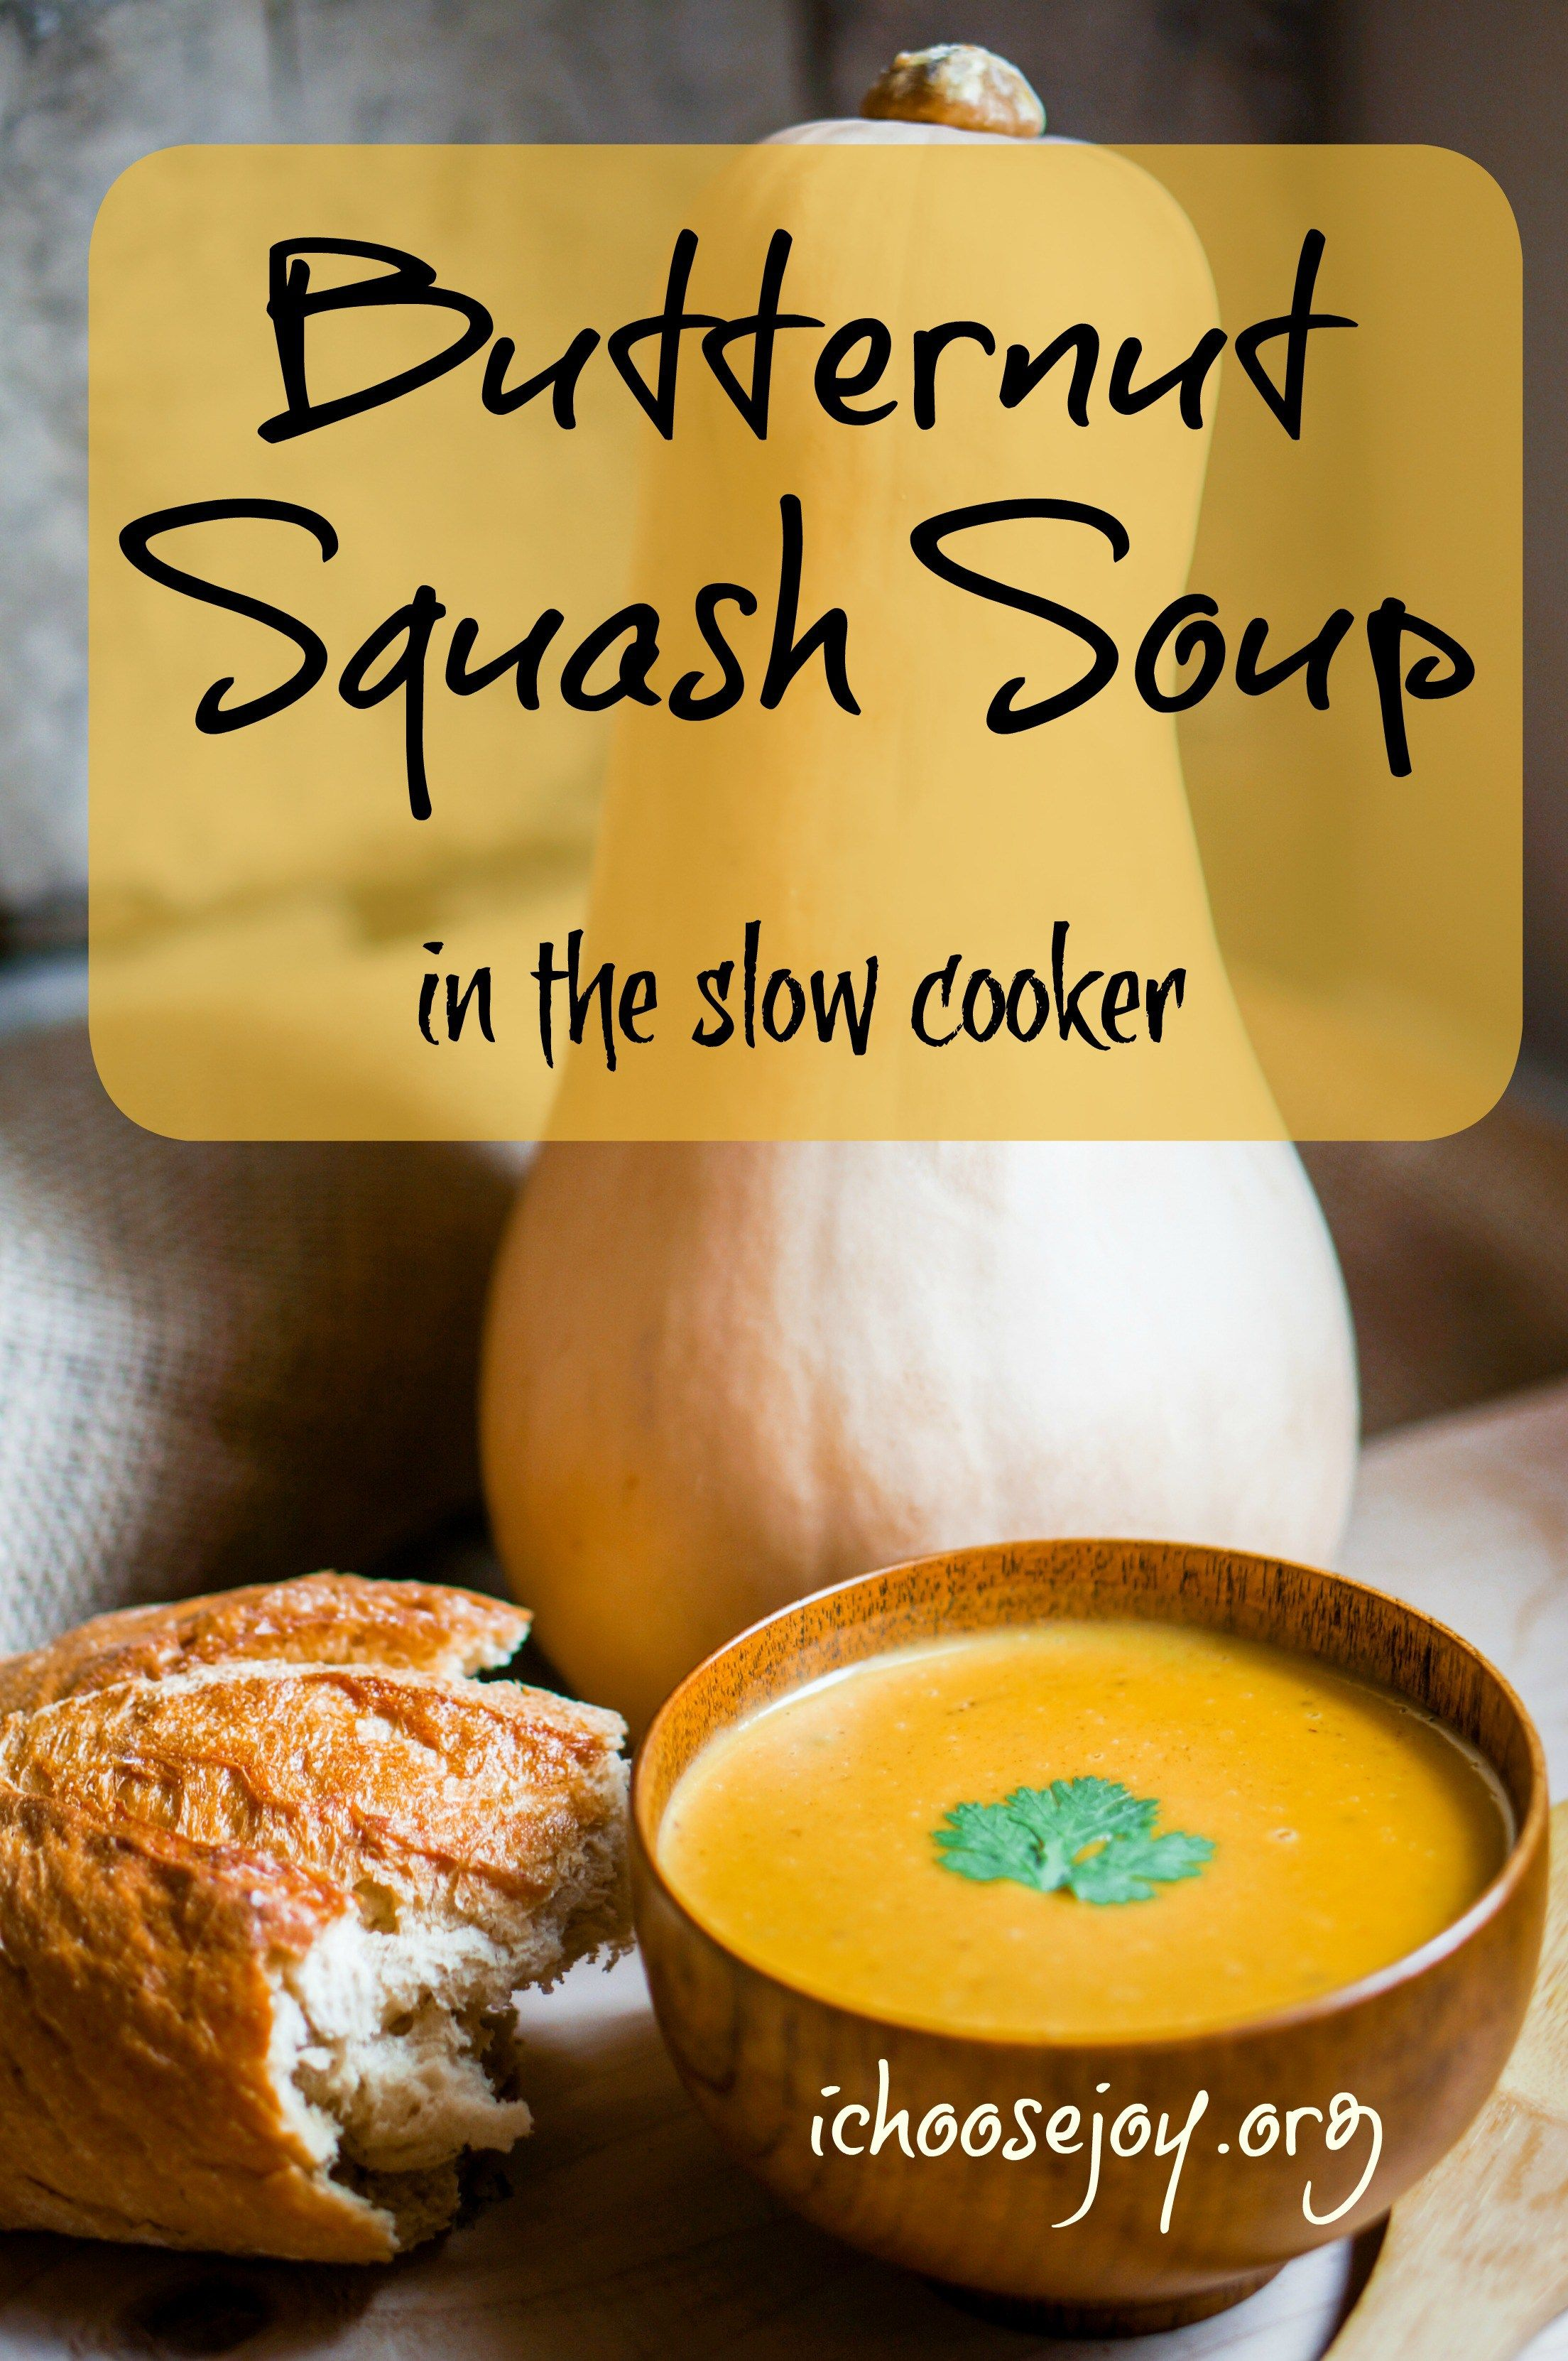 Butternut Squash Soup in slow cooker